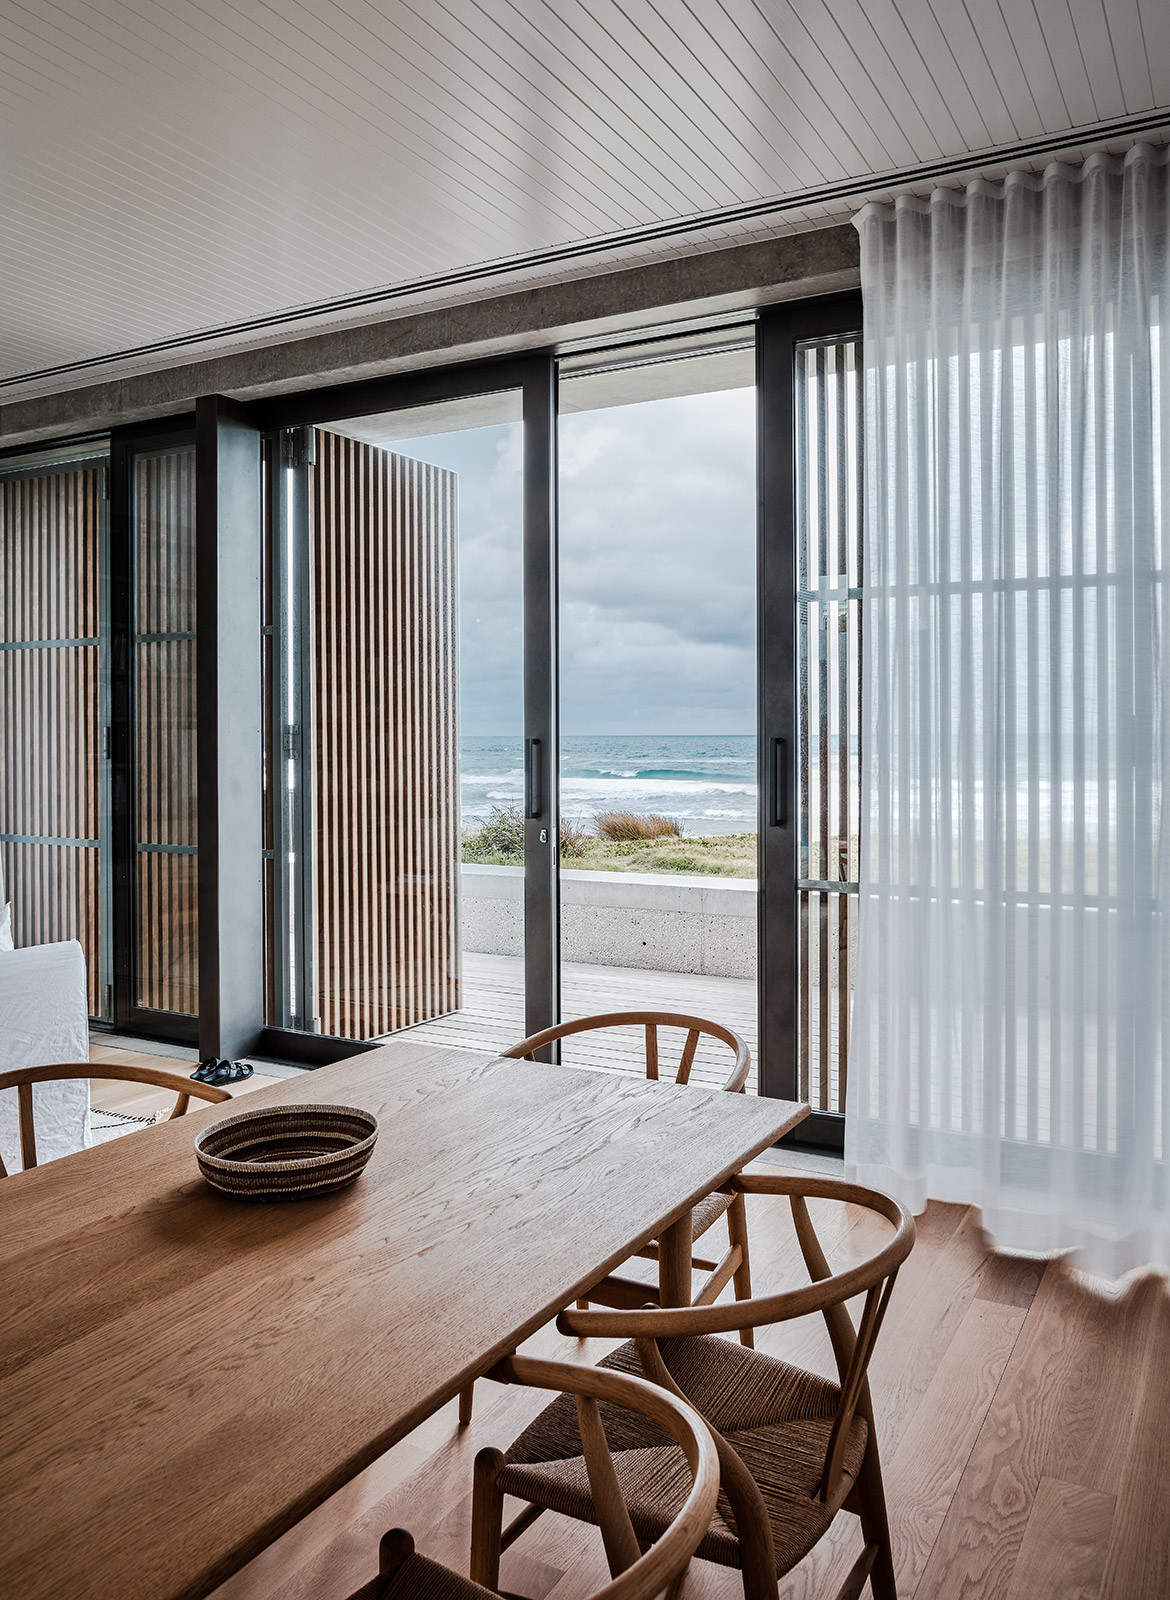 Mermaid Beach Residence B.E Architecture Queenslander Architecture CC Andy MacPherson dining